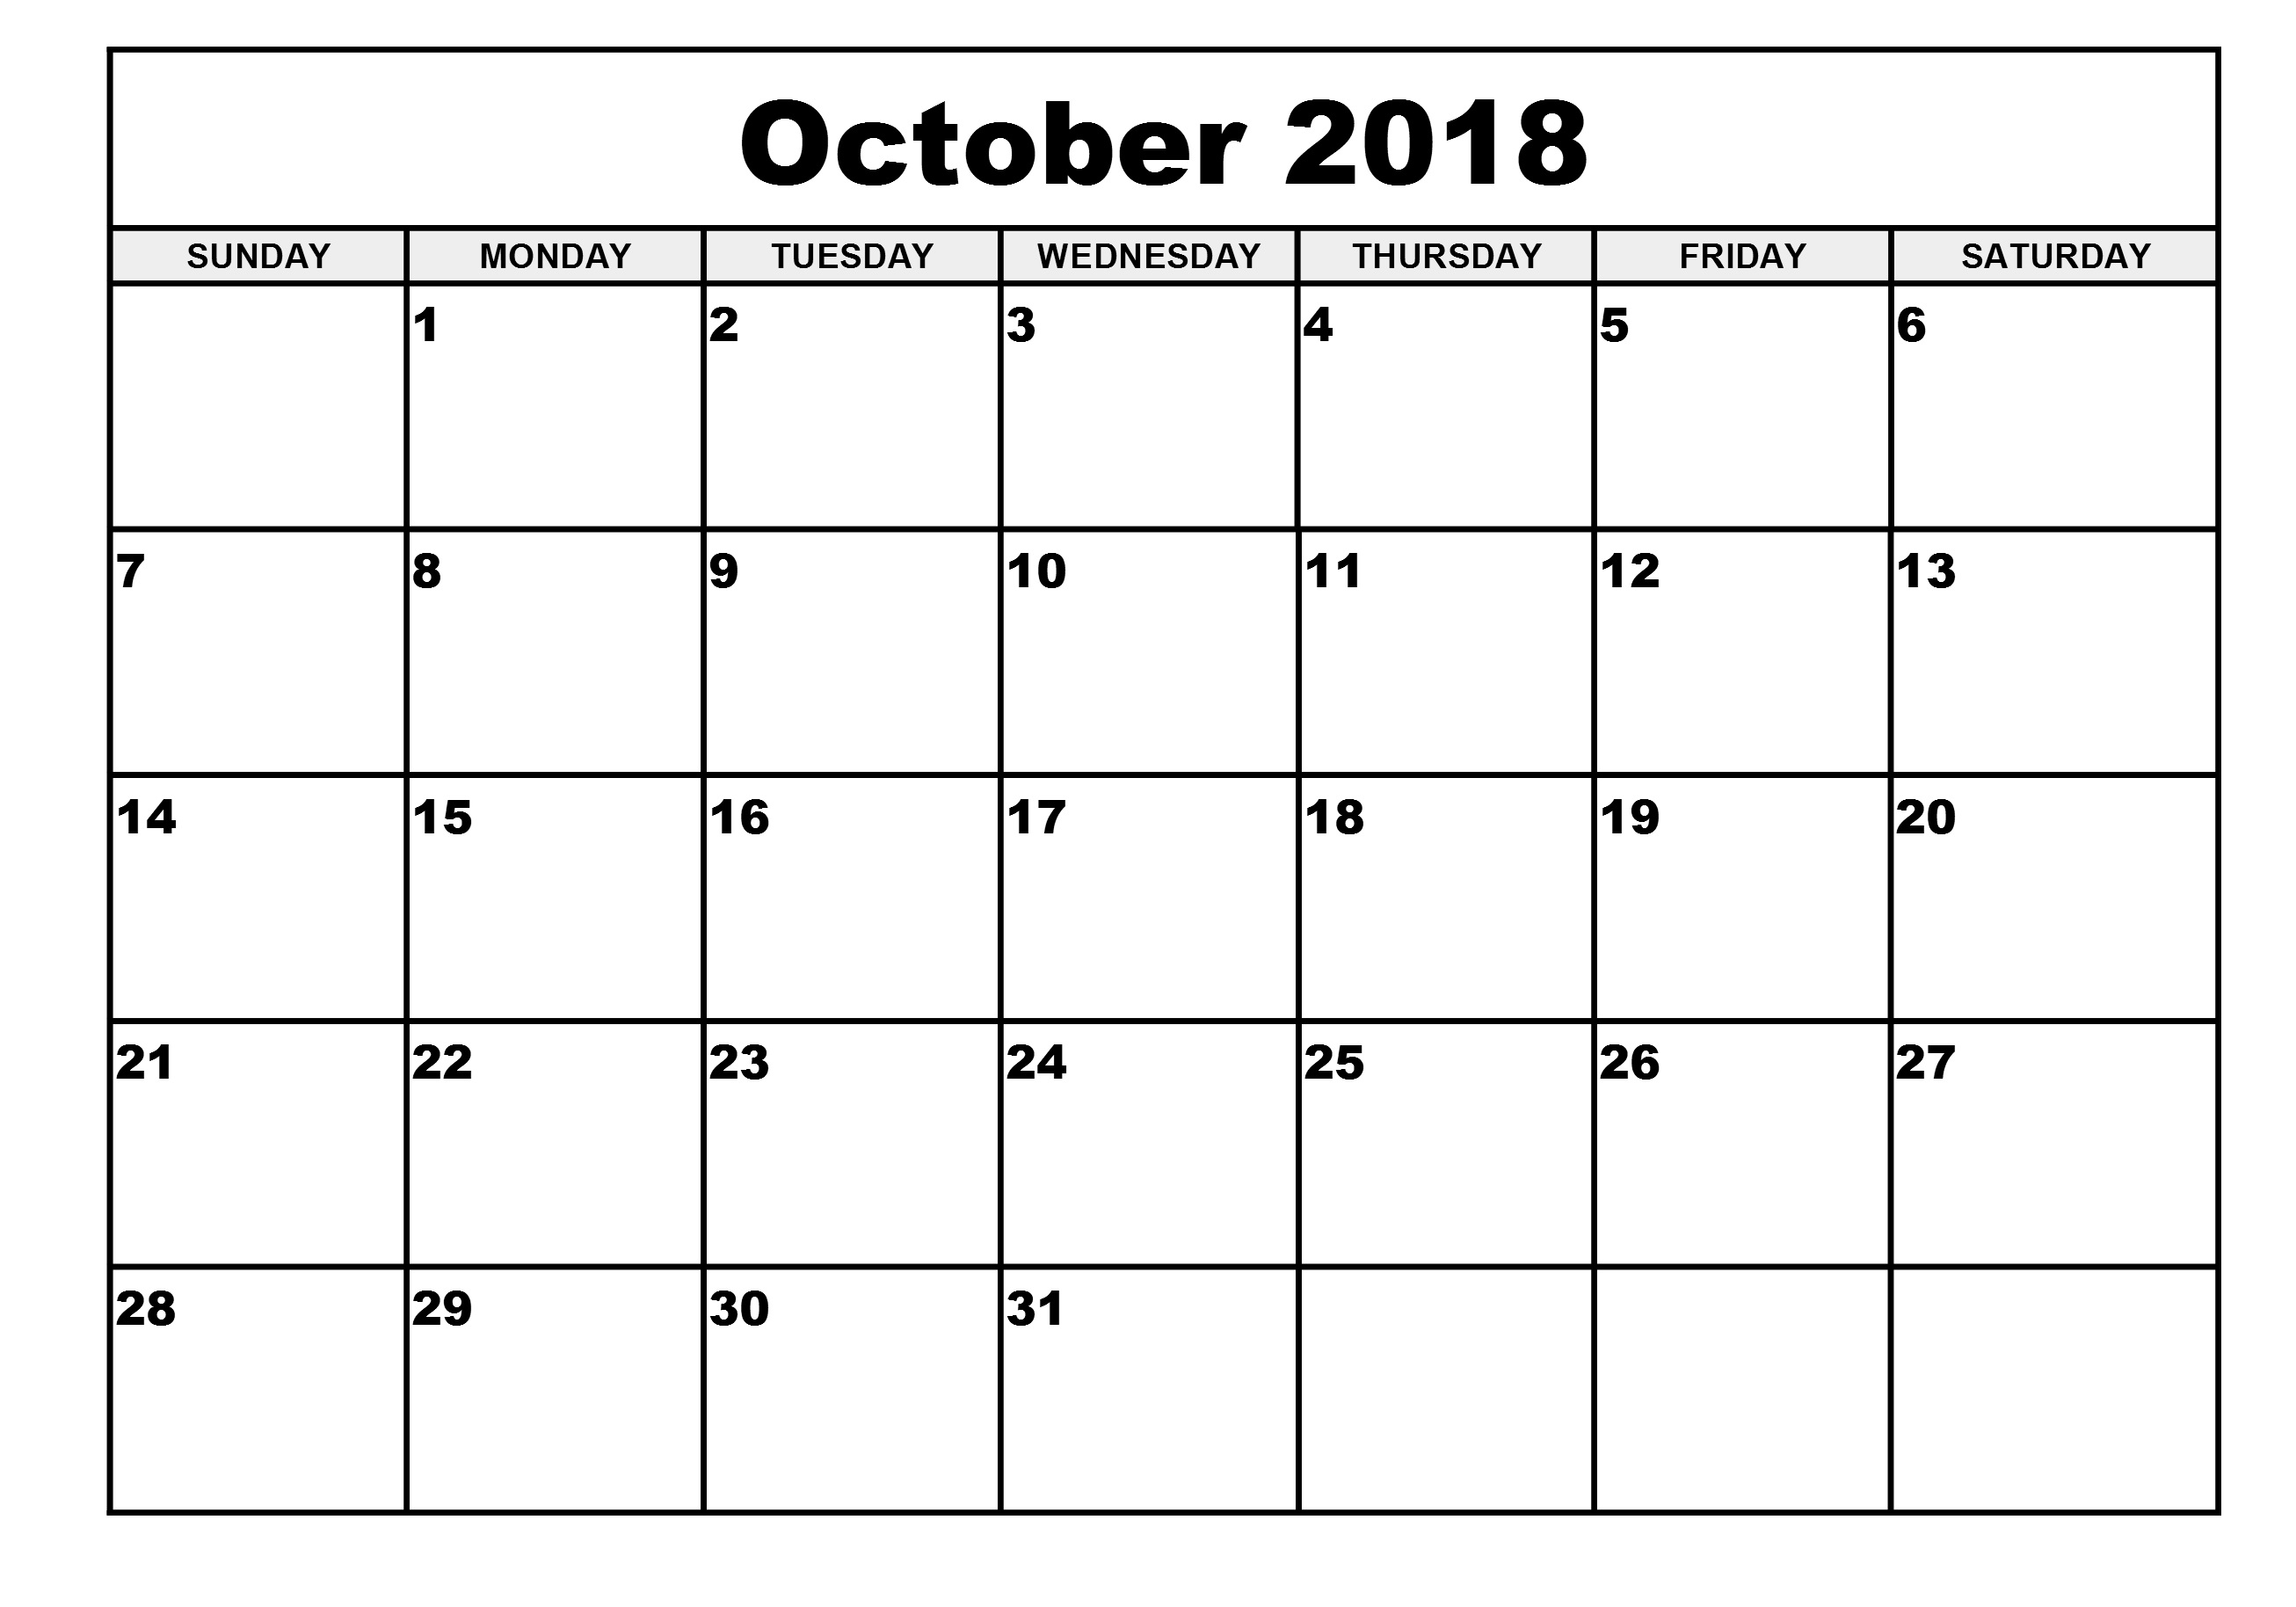 2018 october calendar a4 printable free may 2019 calendar::February 2019 Calendar A4